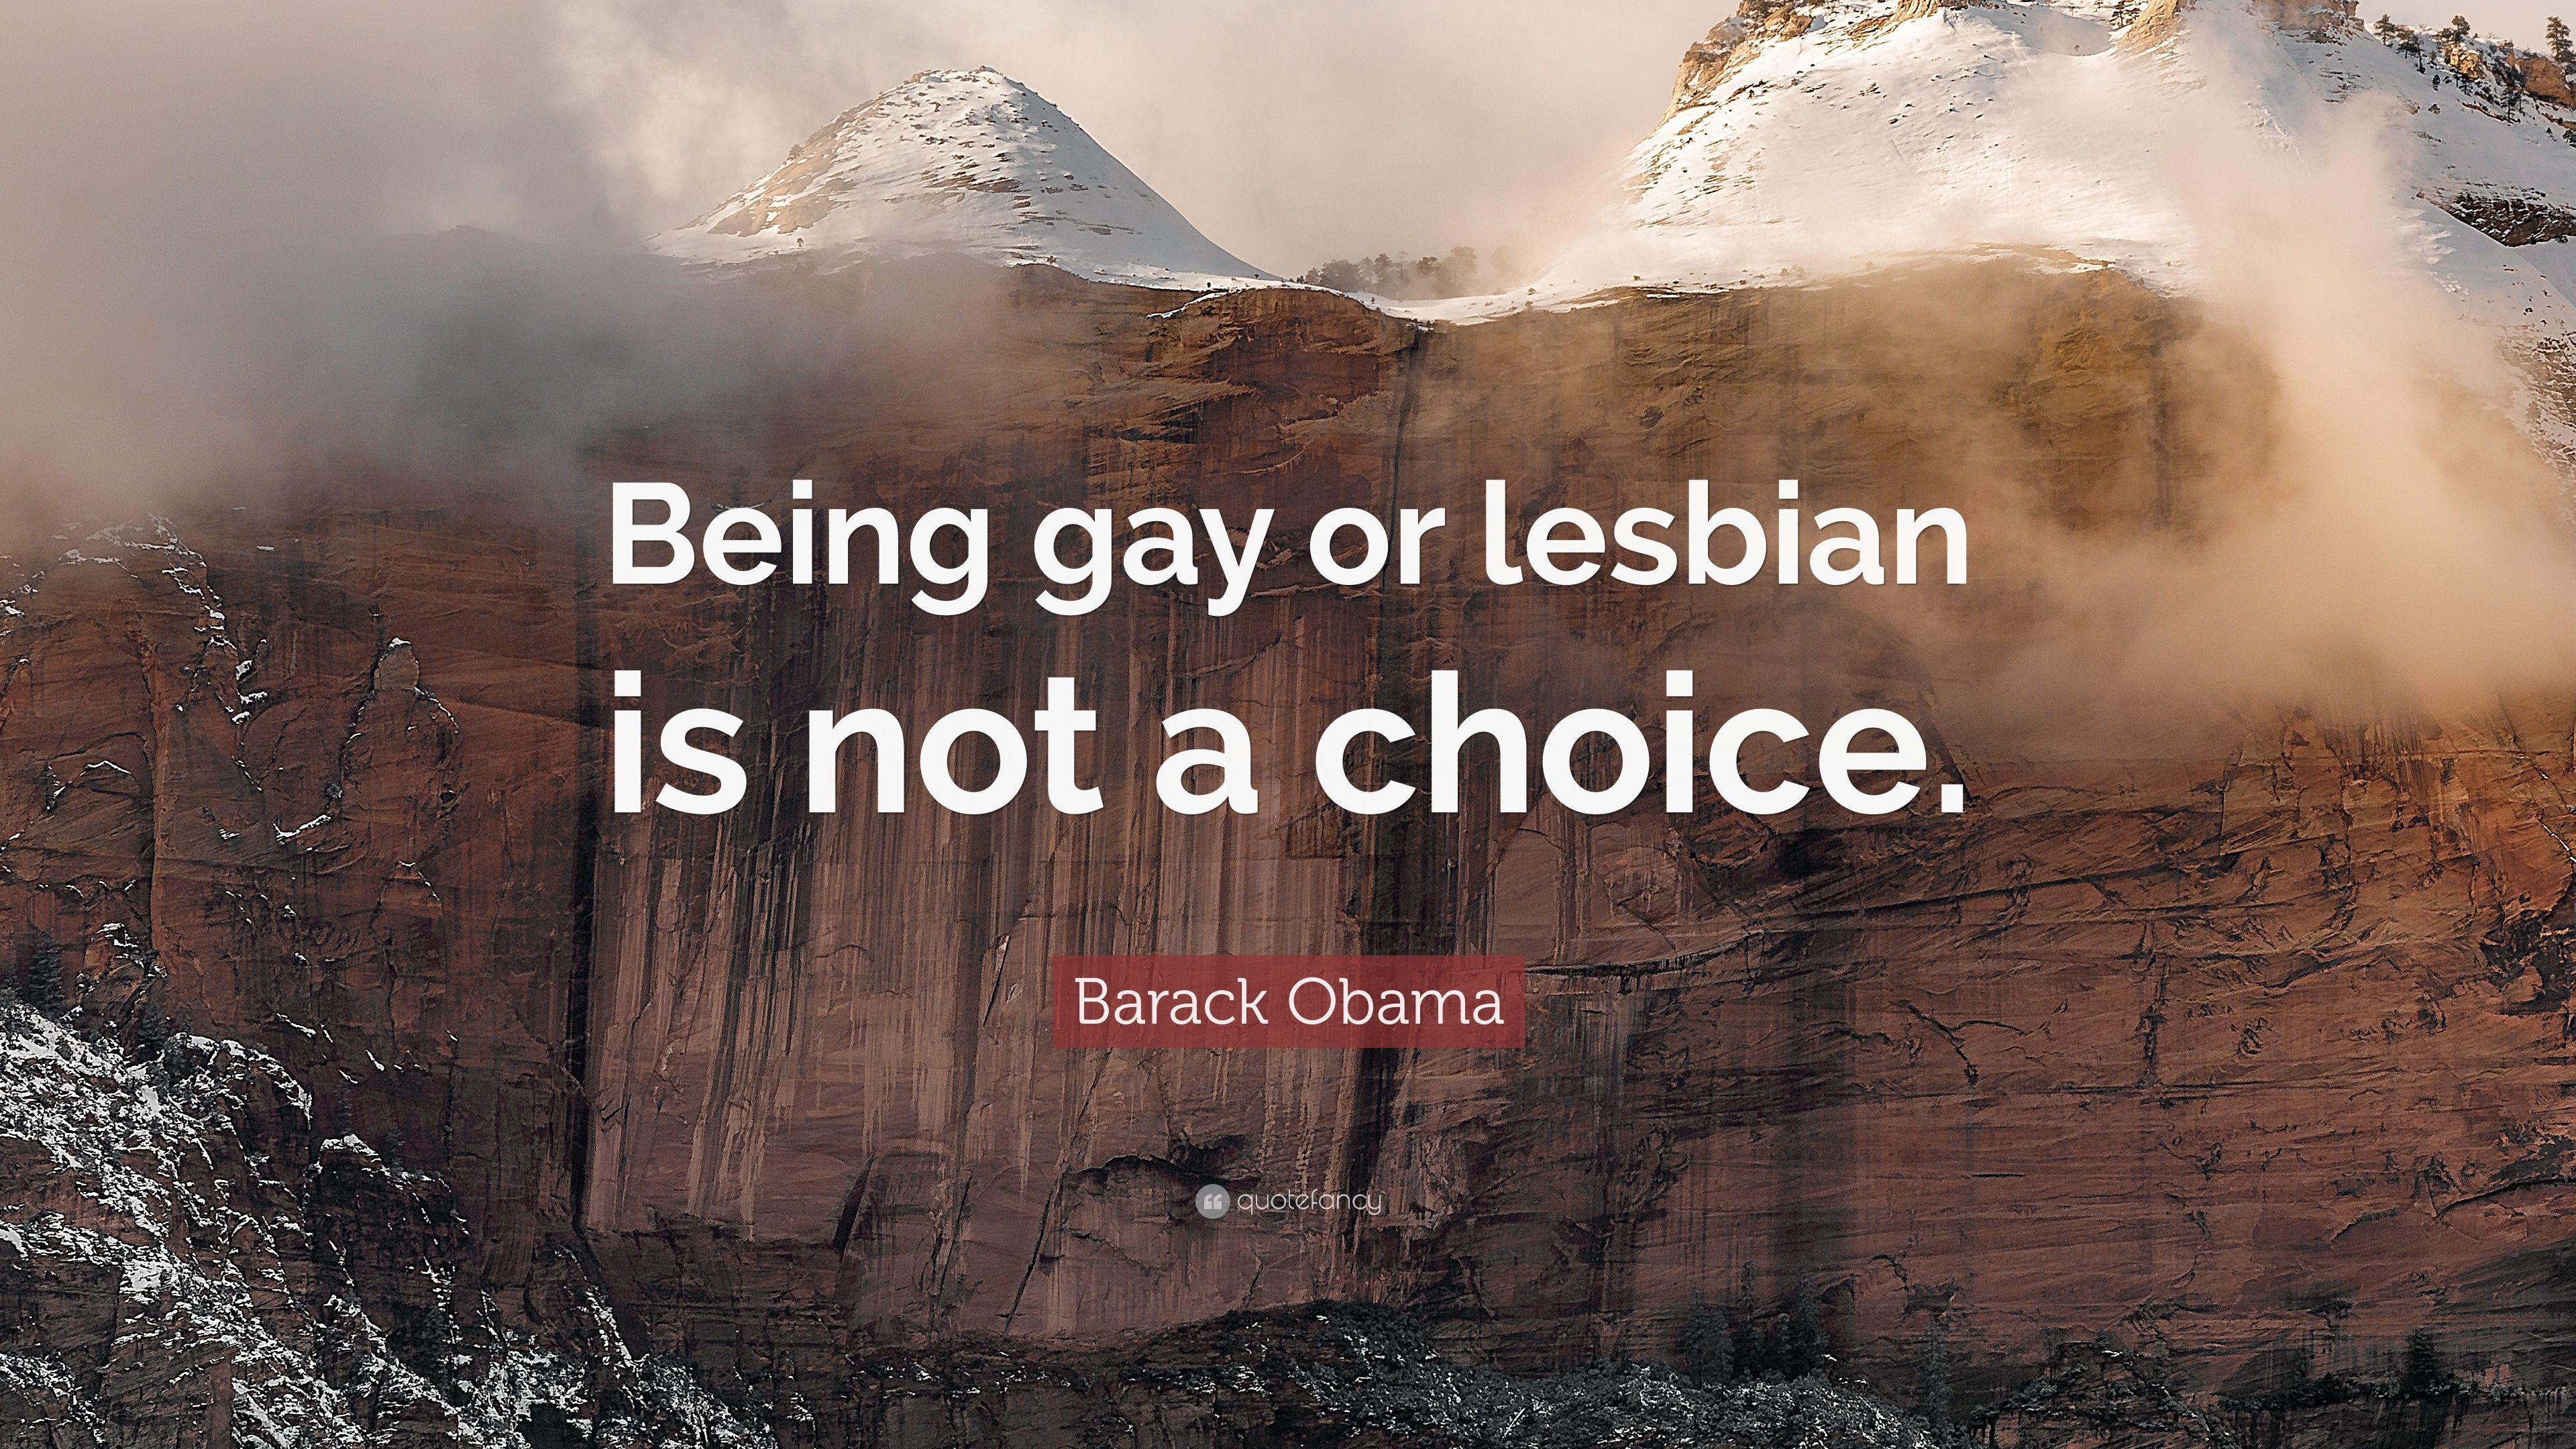 Lesbian Not By Choise